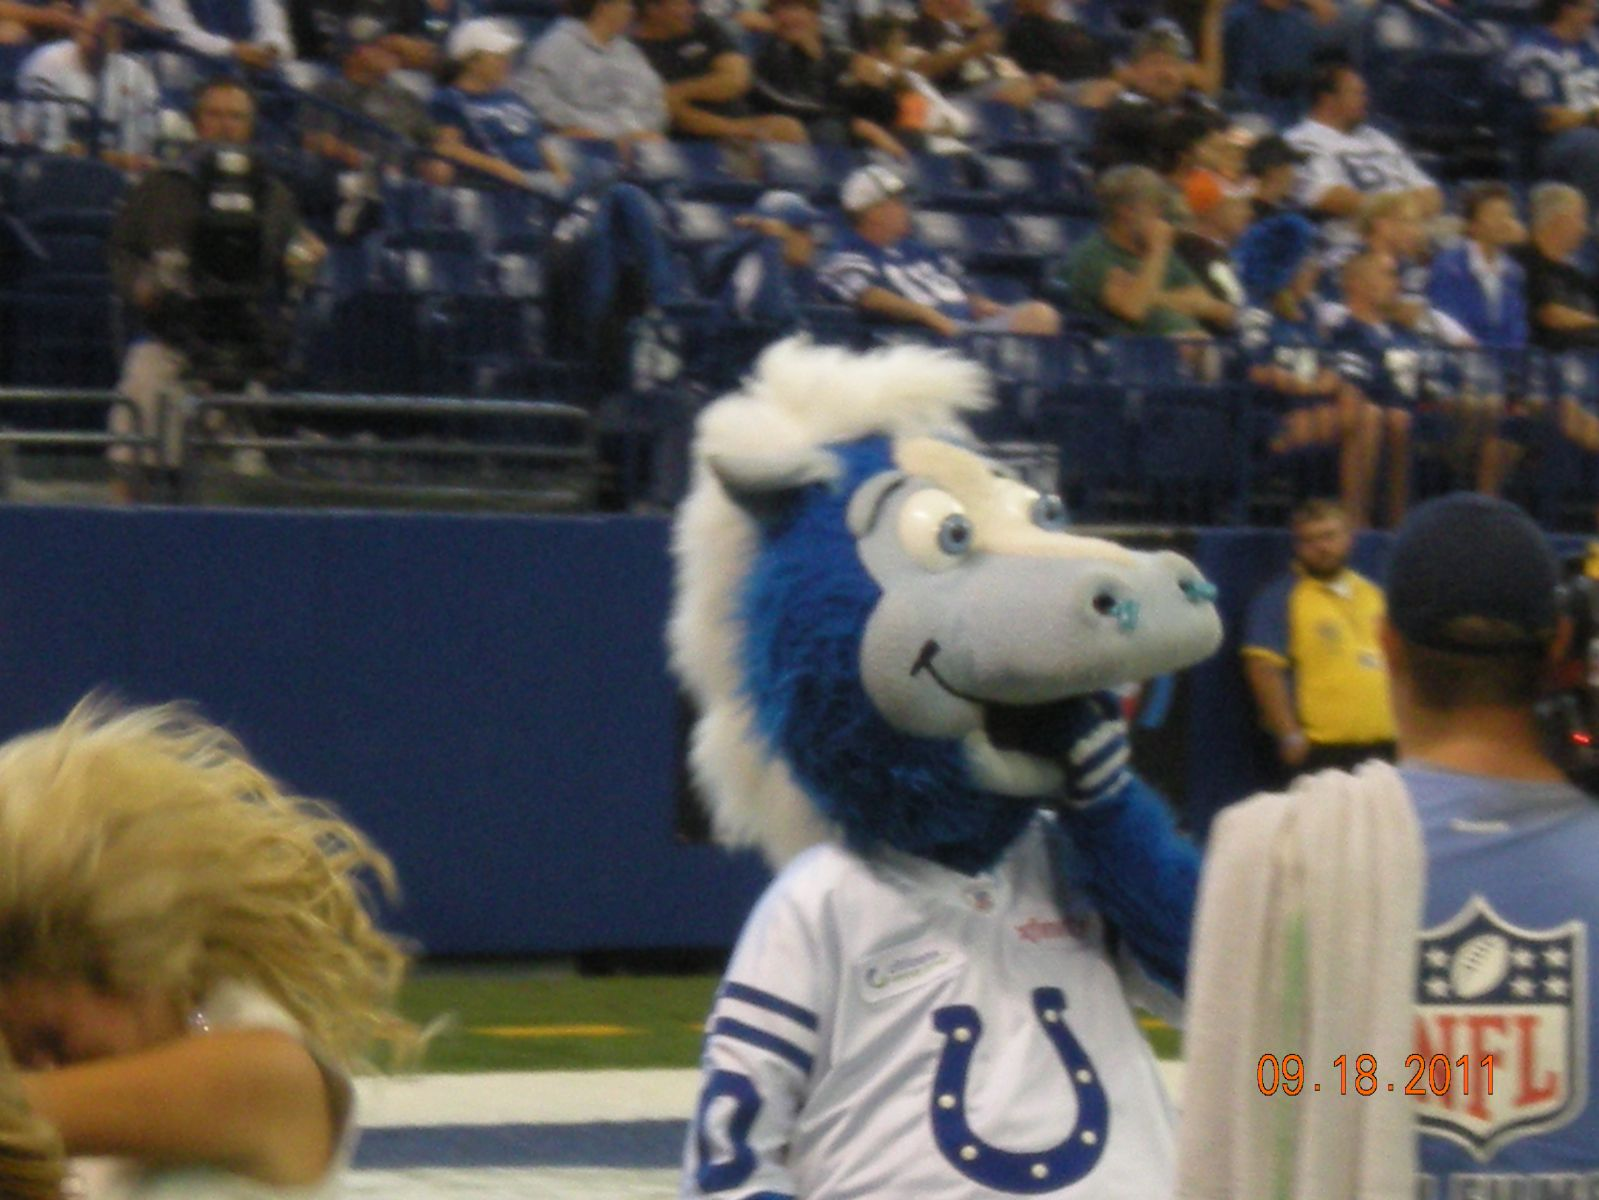 COLTS HOME OPENER SEPT 2011